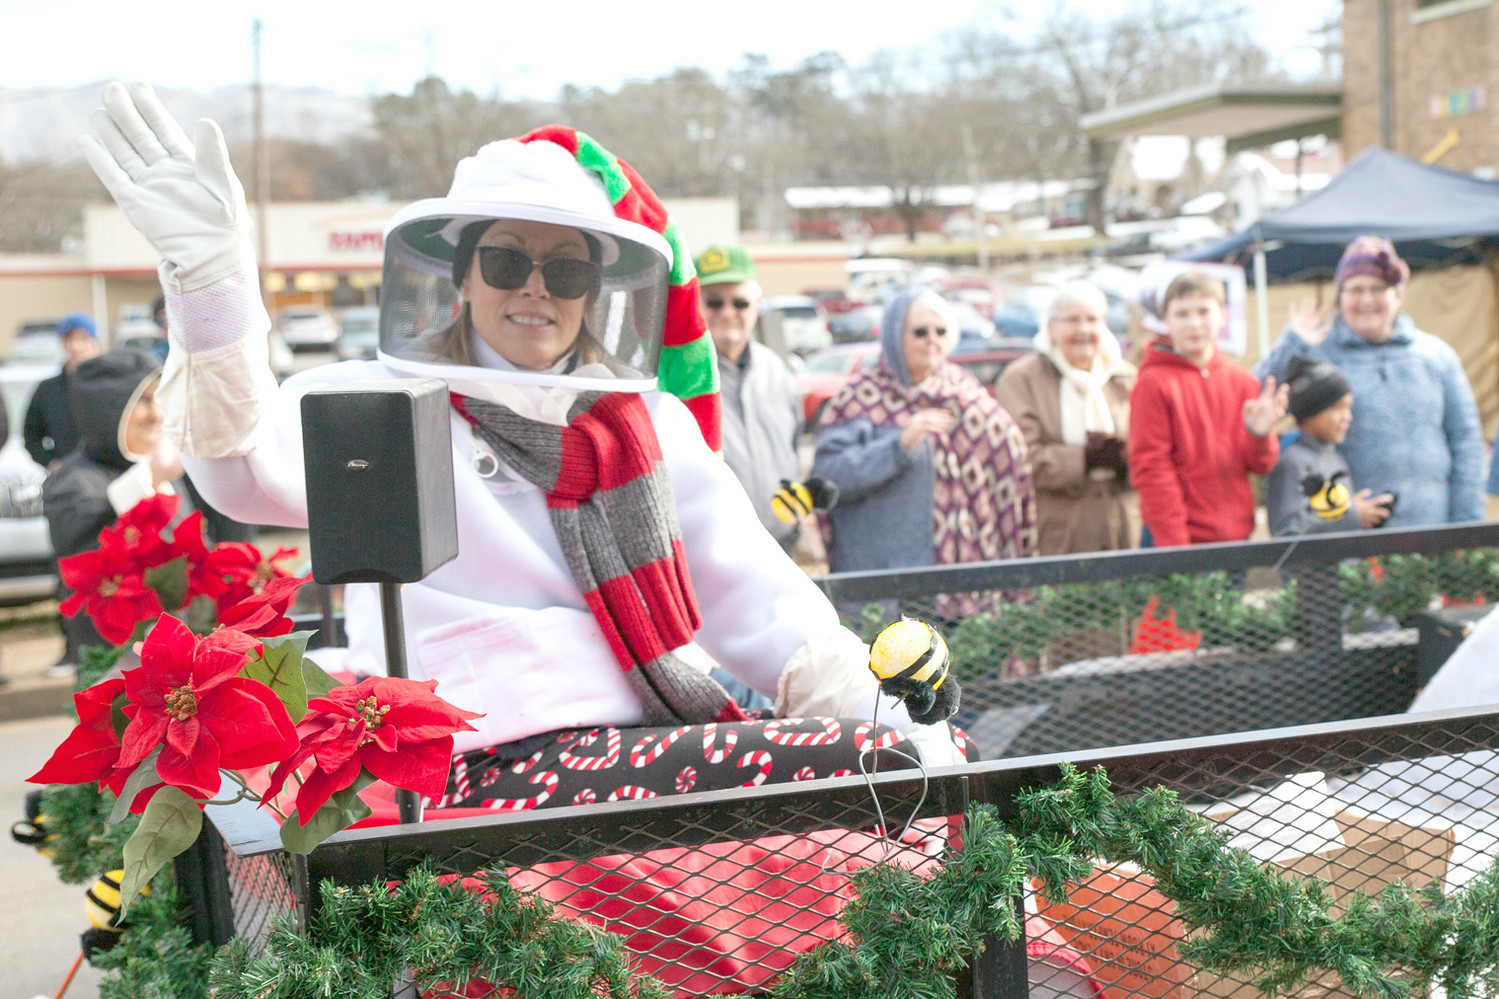 THE OCOEE REGION BEEKEEPERS Association was represented in the parade on Saturday.  This lady waves as several large bees buzz about on the float.